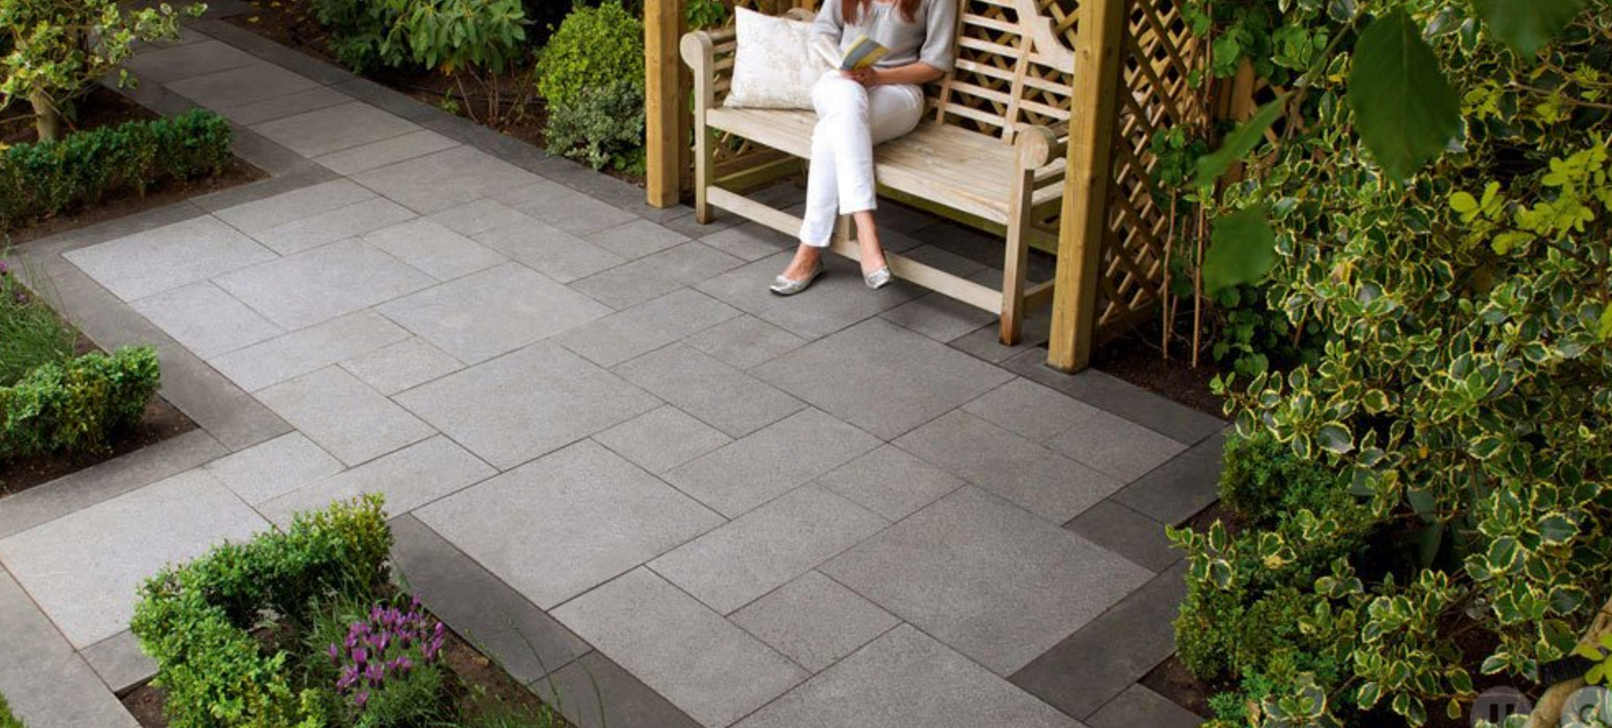 adding natural stone or concrete pavers to your outdoor spaces